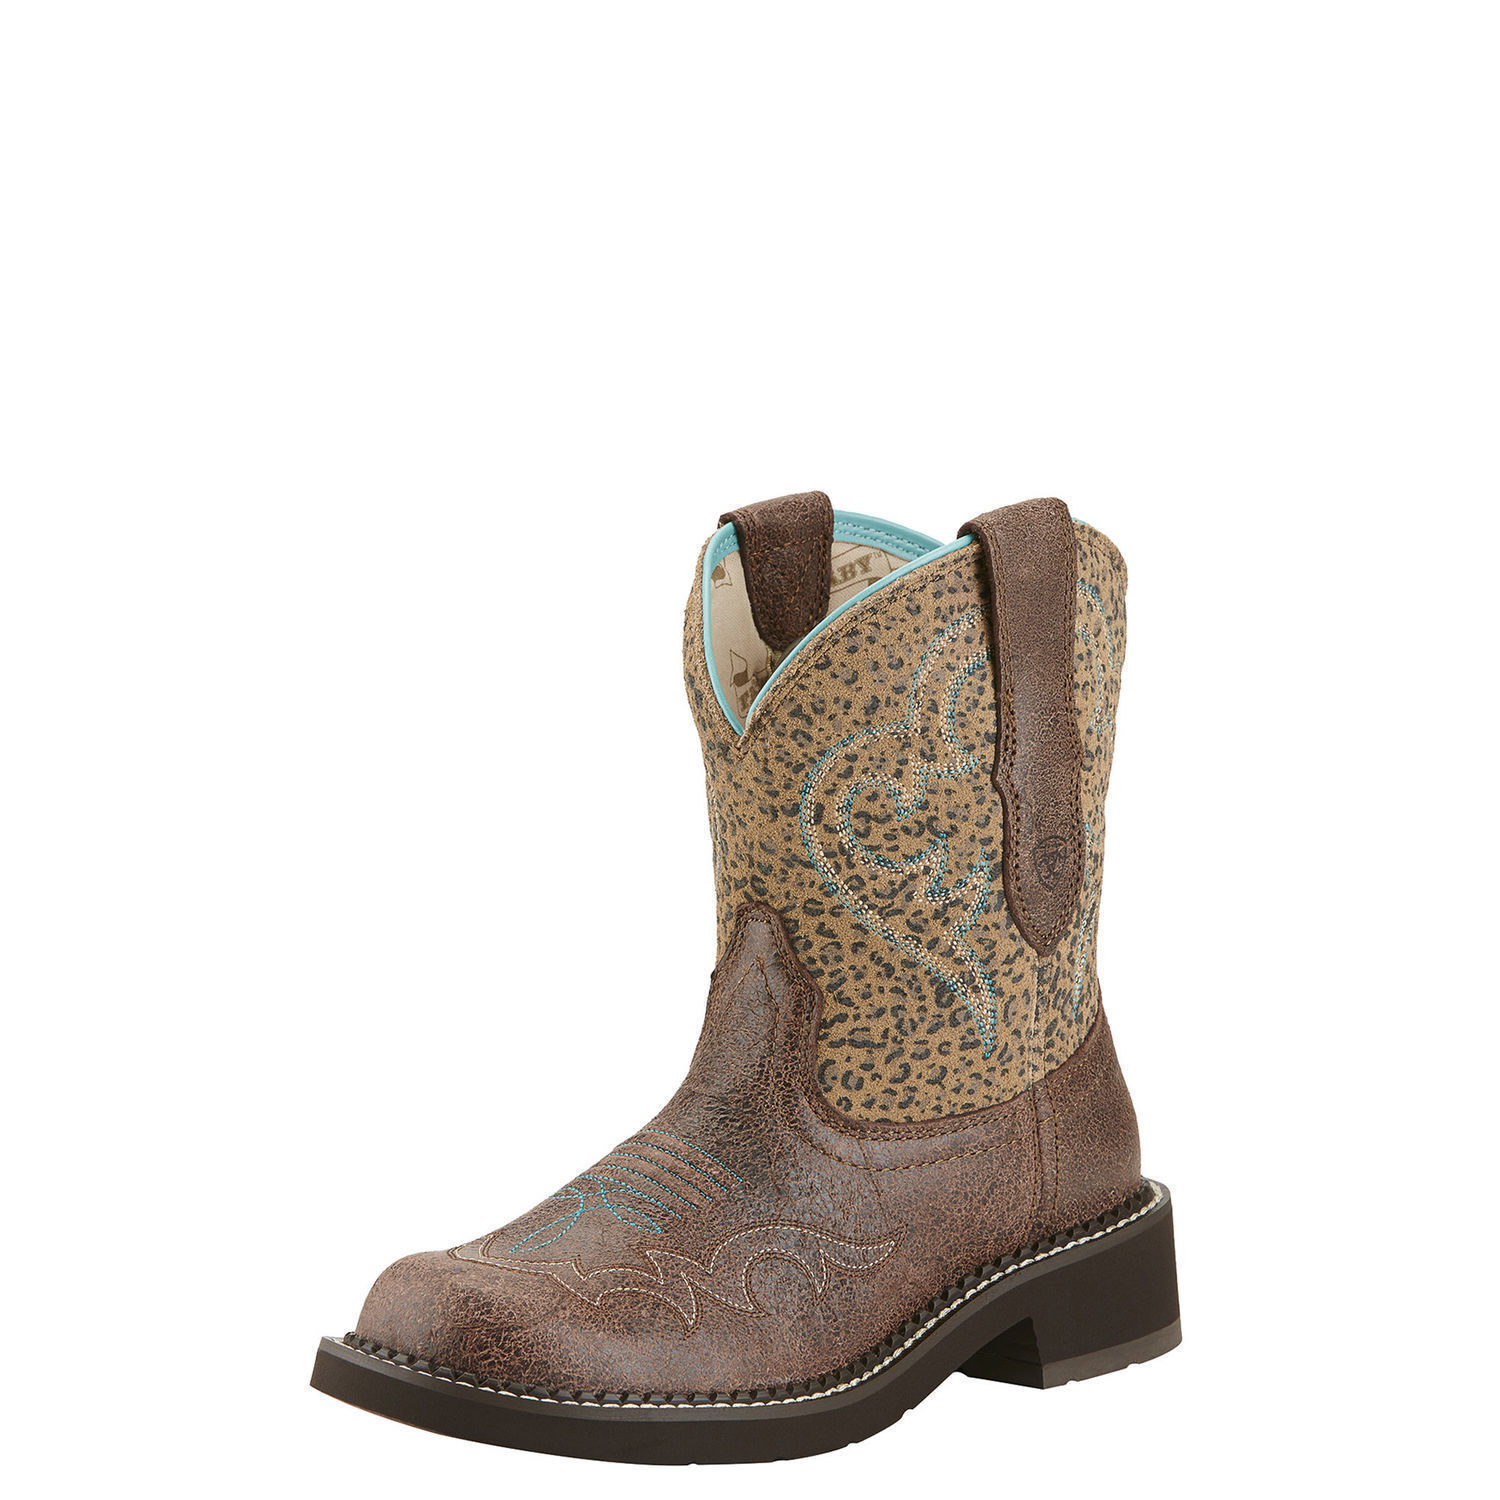 Ariat 10015363 Fatbaby Fatbaby Fatbaby Heritage Harmony 8  Short Wide Calf Cowgirl Riding Boots 0a223d